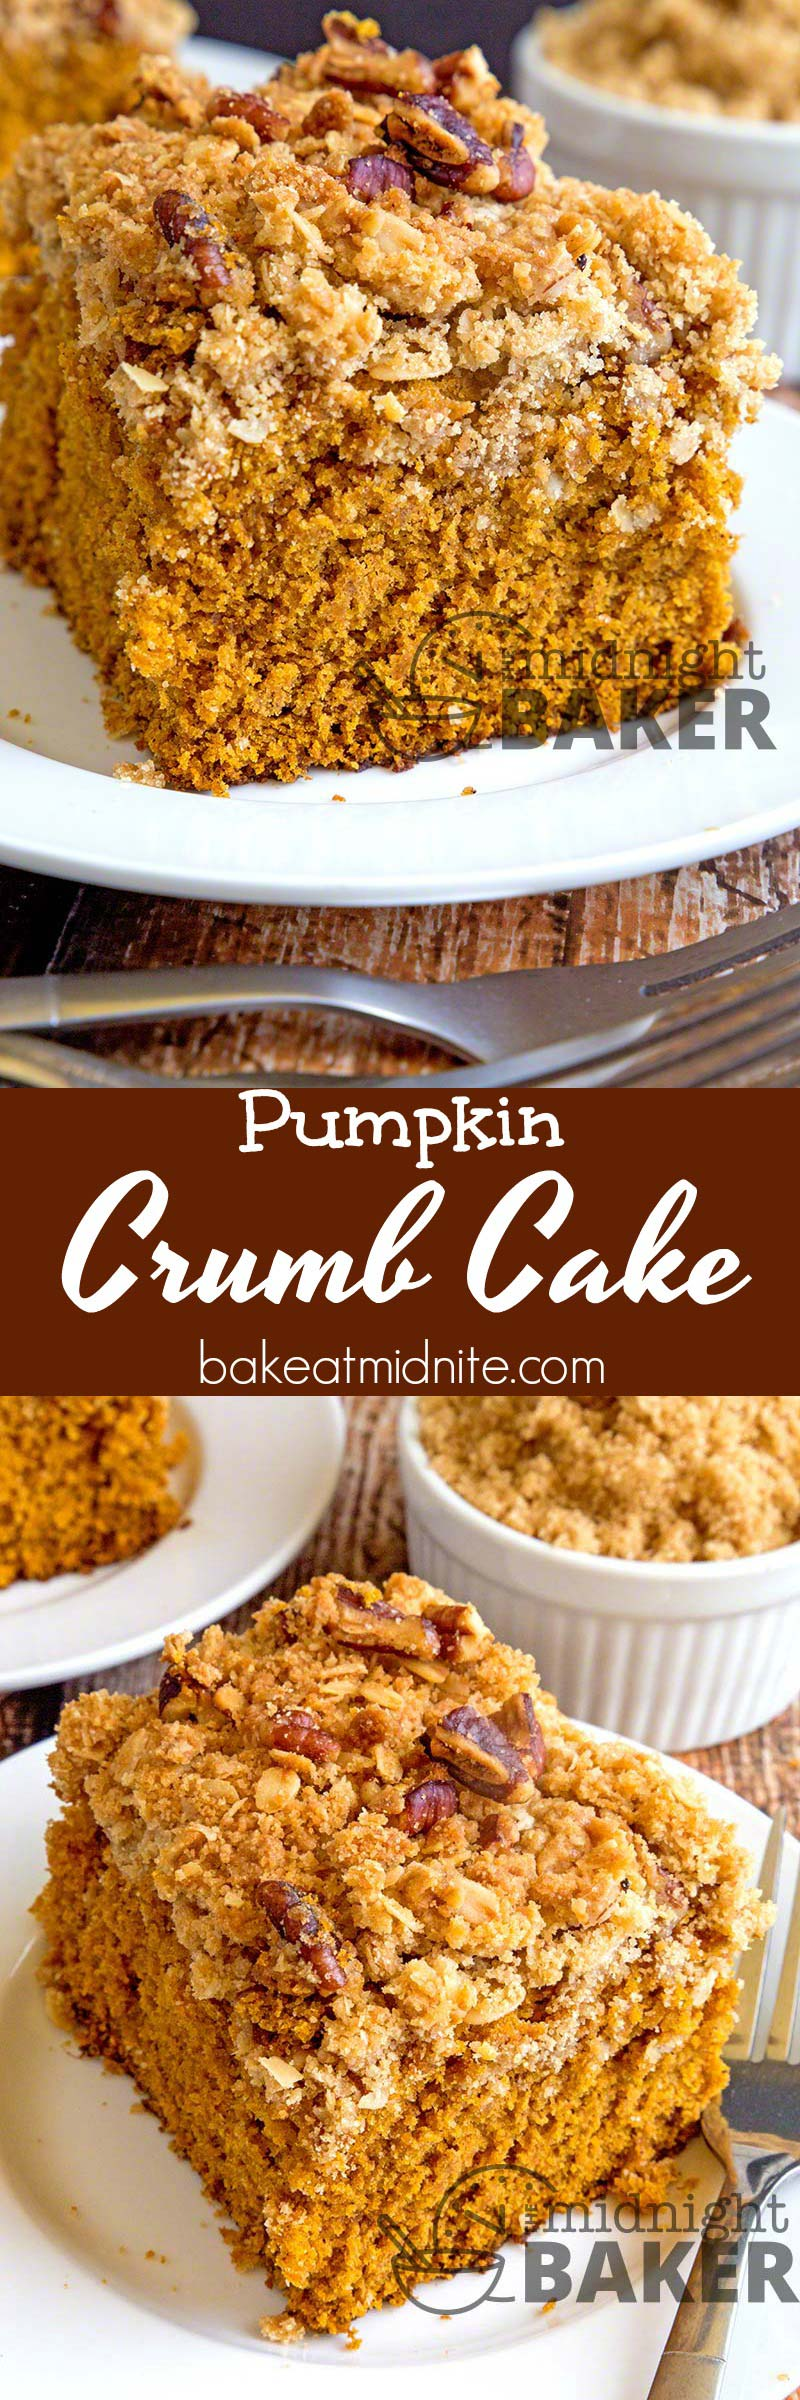 One of the most delicious pumpkin crumb coffee cakes you'll ever eat.